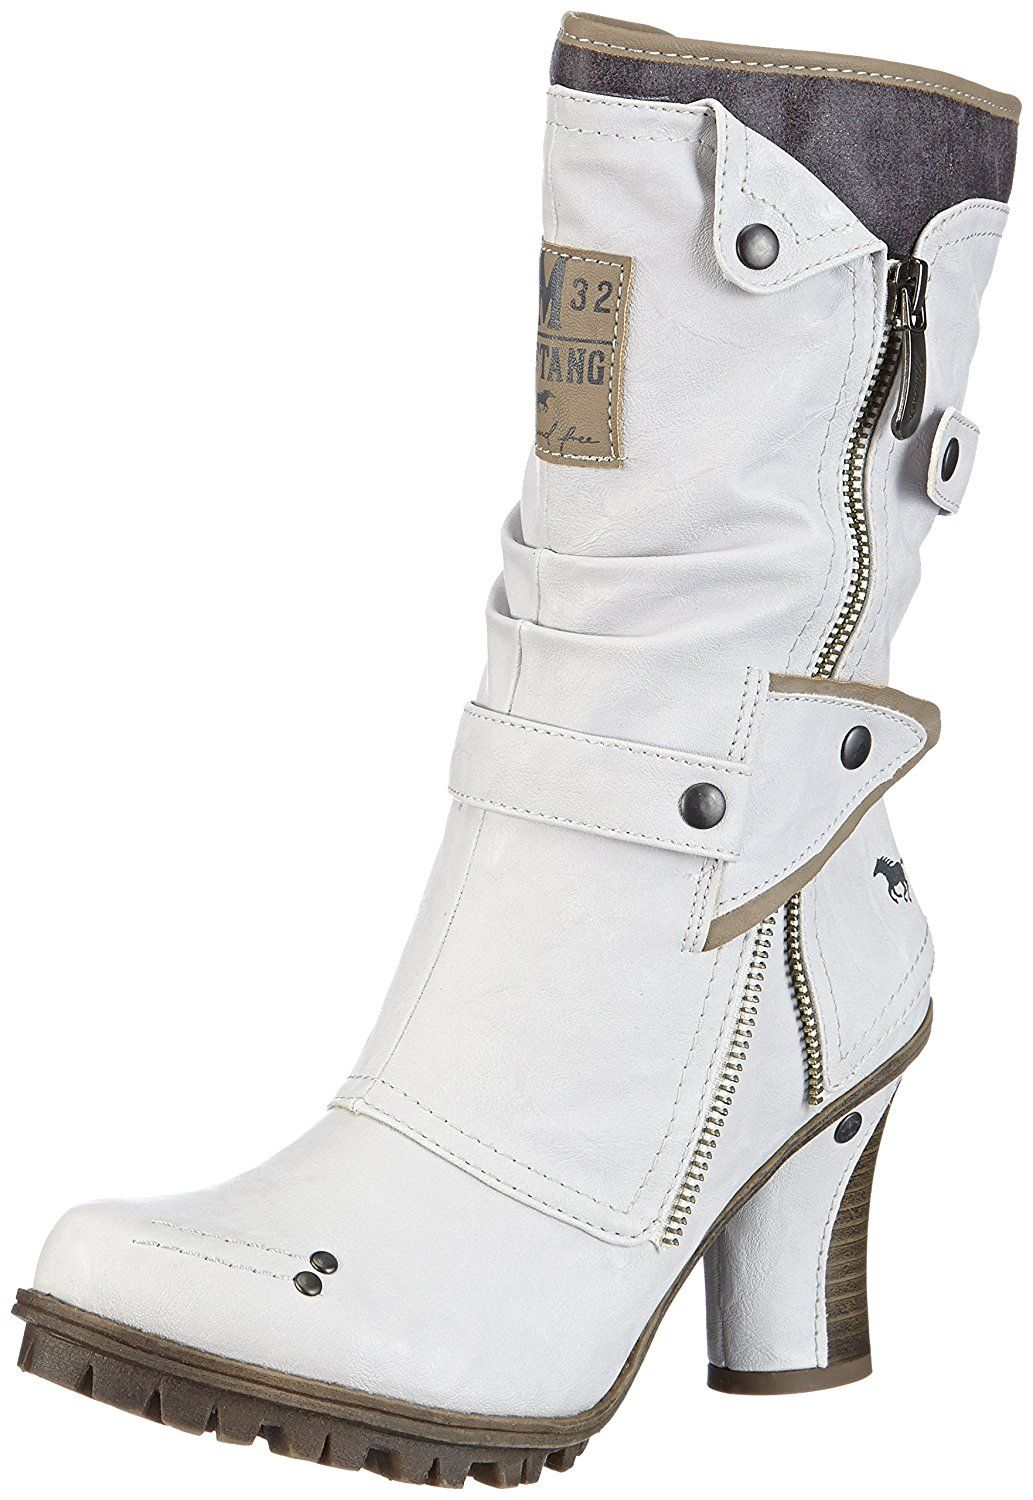 Mustang boots women's 43C 006 (1141 606 100) in 2019 | Boots